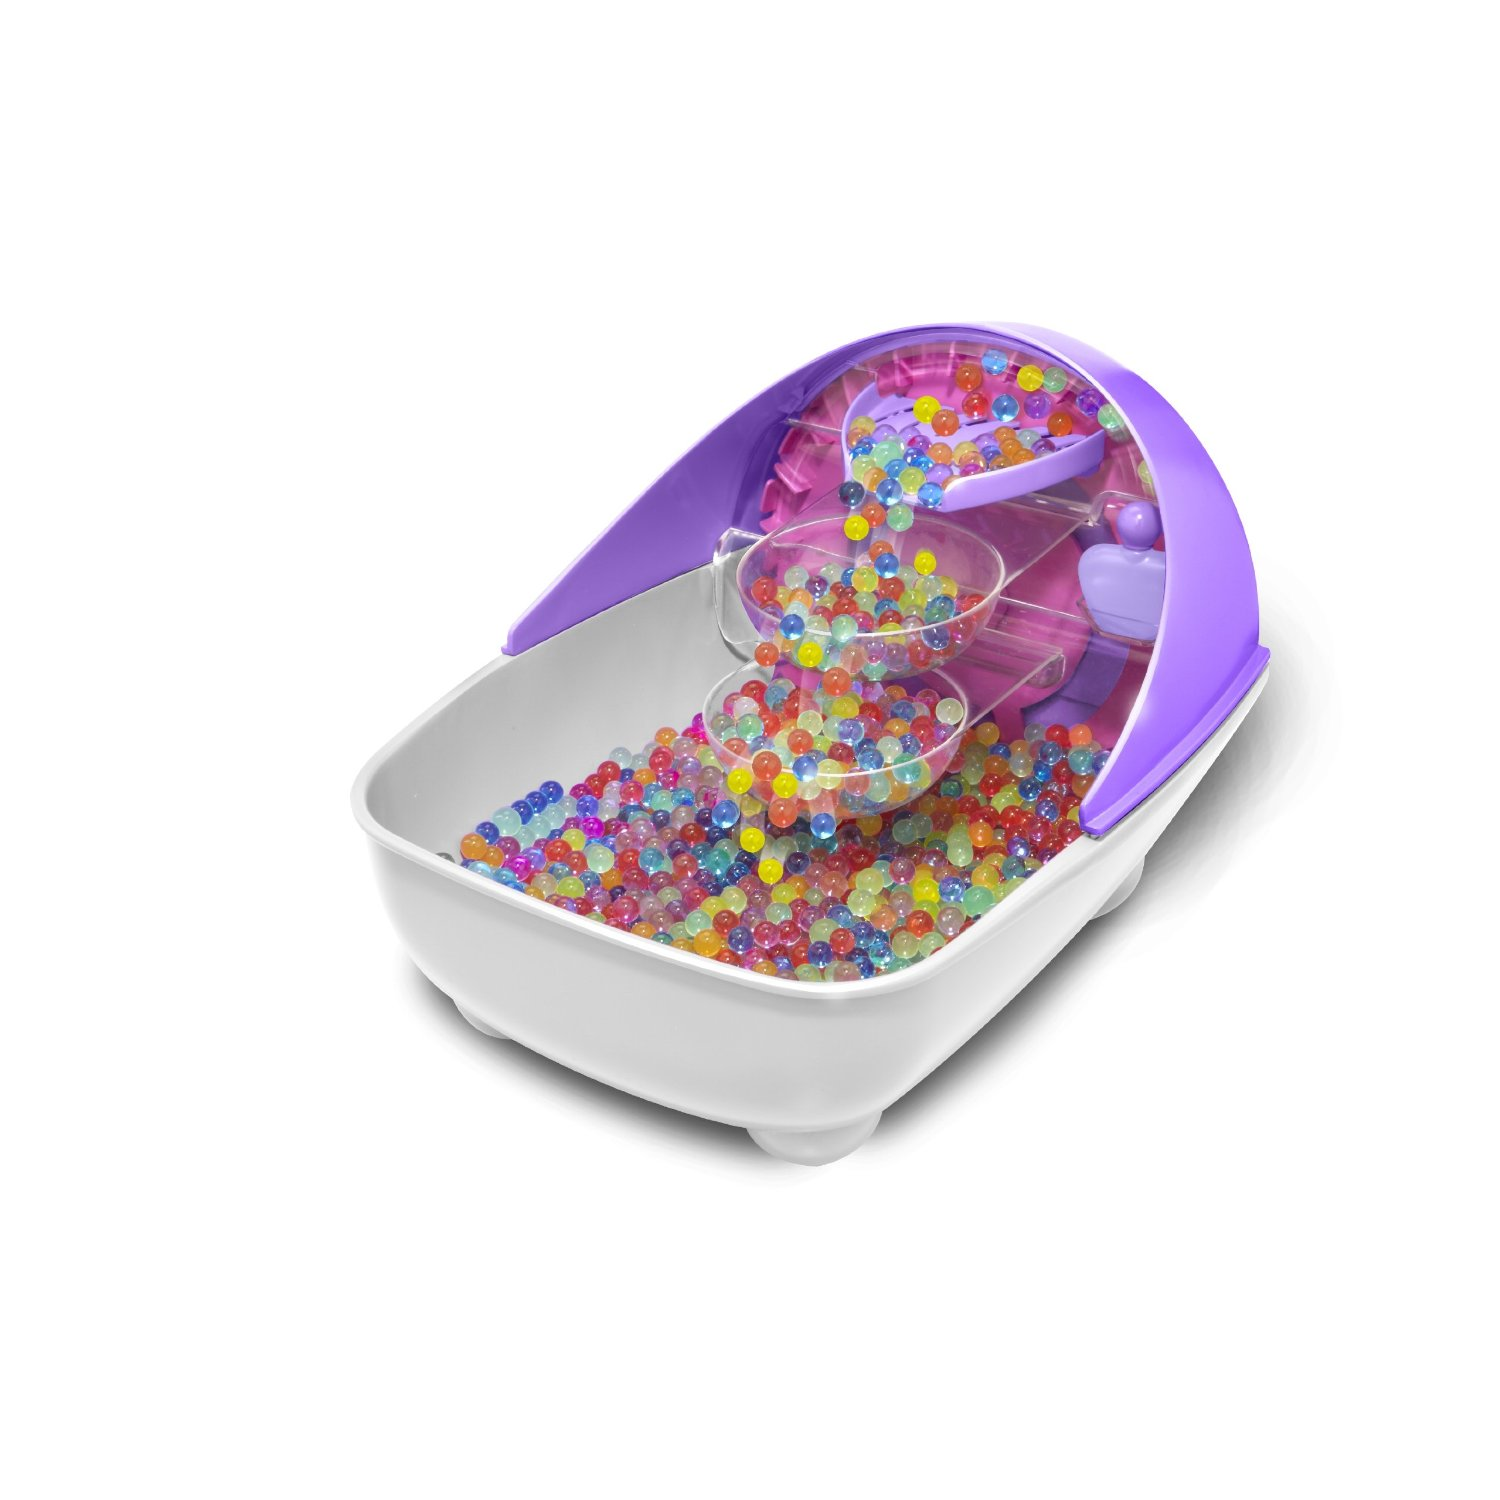 Orbeez Soothing Spa for kids – A Christmas Sell Out